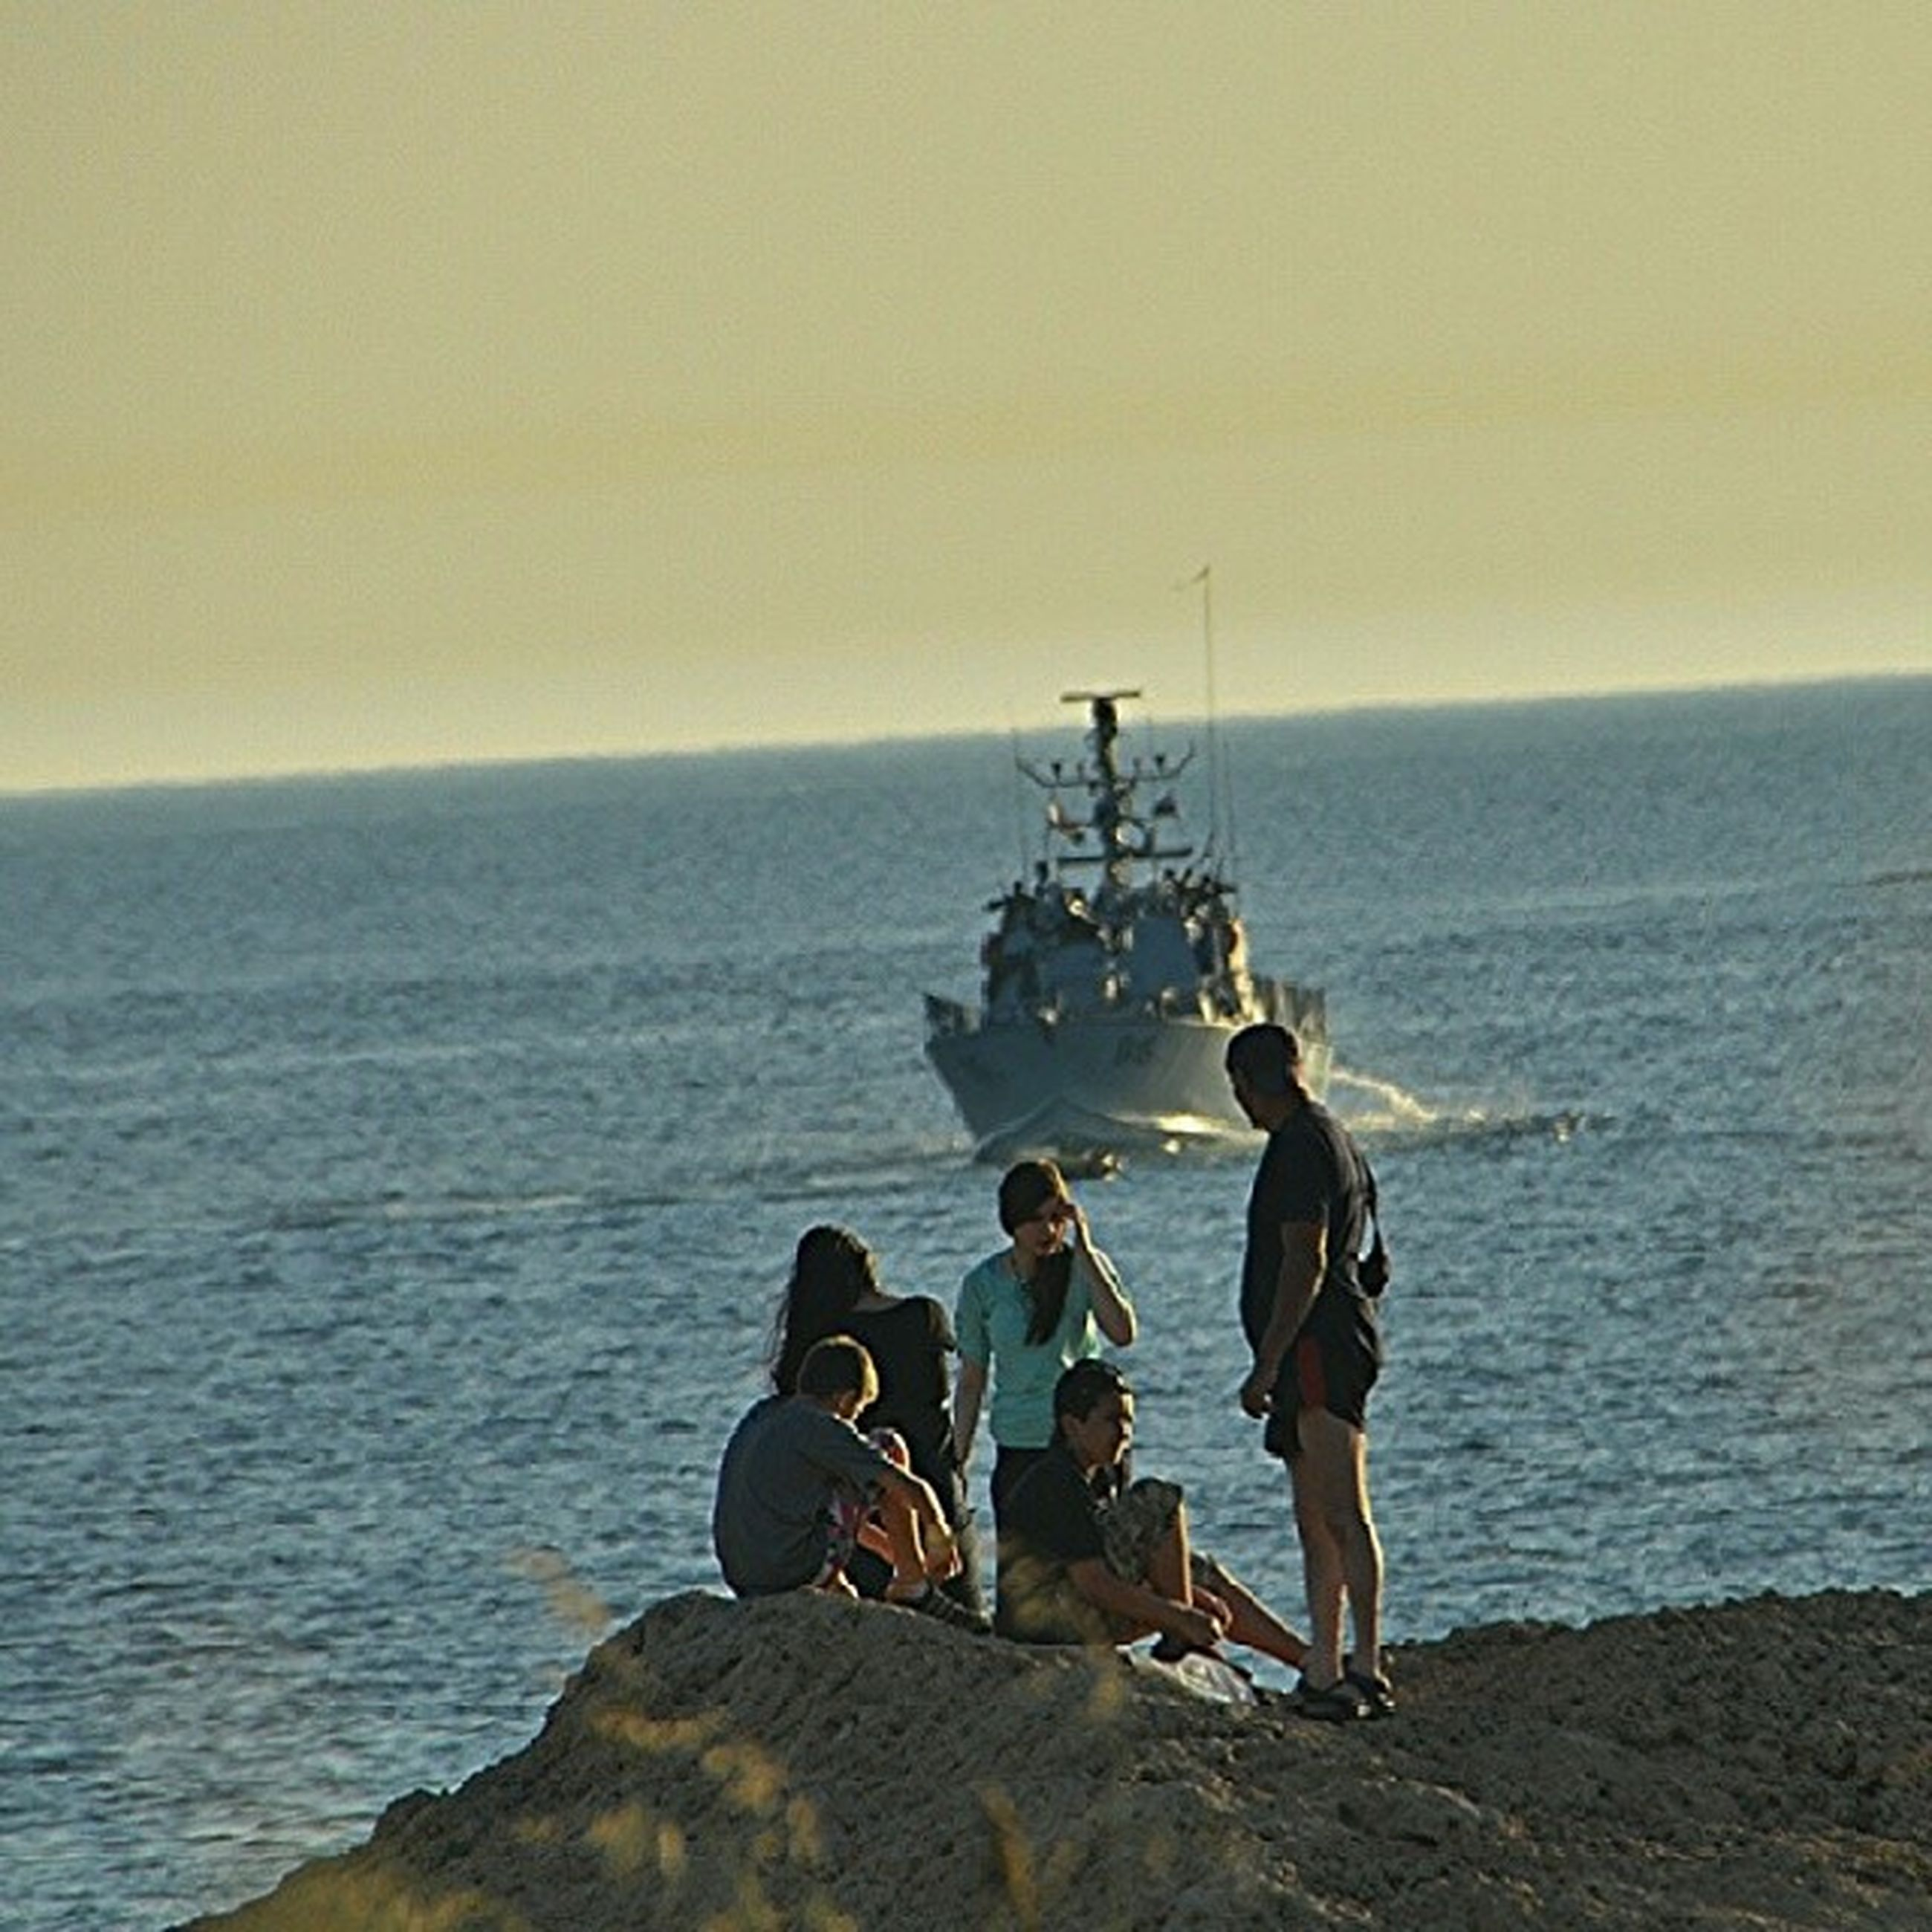 sea, horizon over water, water, men, lifestyles, leisure activity, sky, scenics, nautical vessel, nature, beauty in nature, fishing, vacations, togetherness, tranquility, tranquil scene, beach, standing